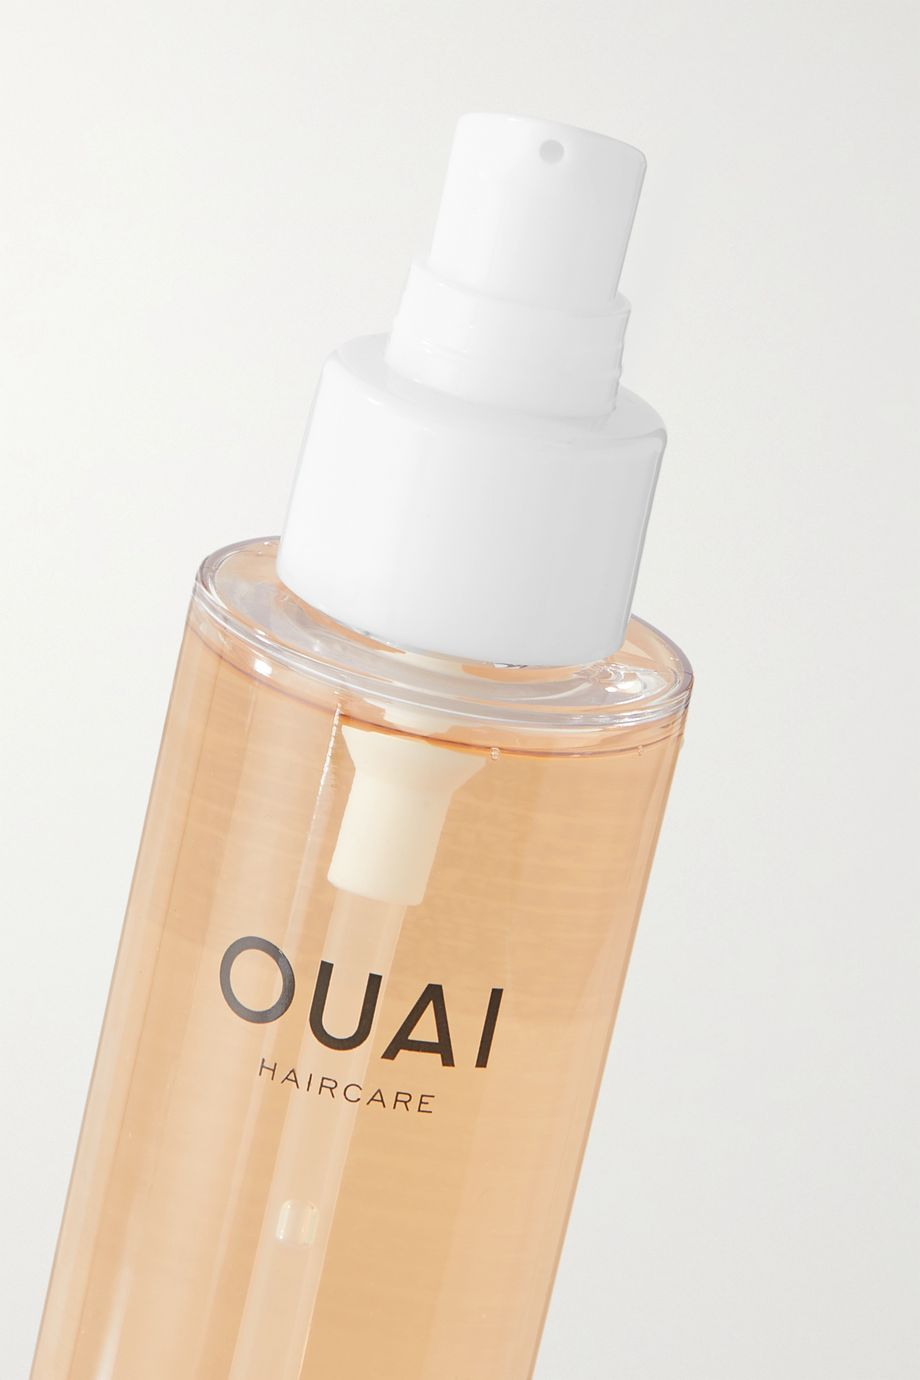 OUAI HAIRCARE Rose Hair and Body Oil, 98.9ml